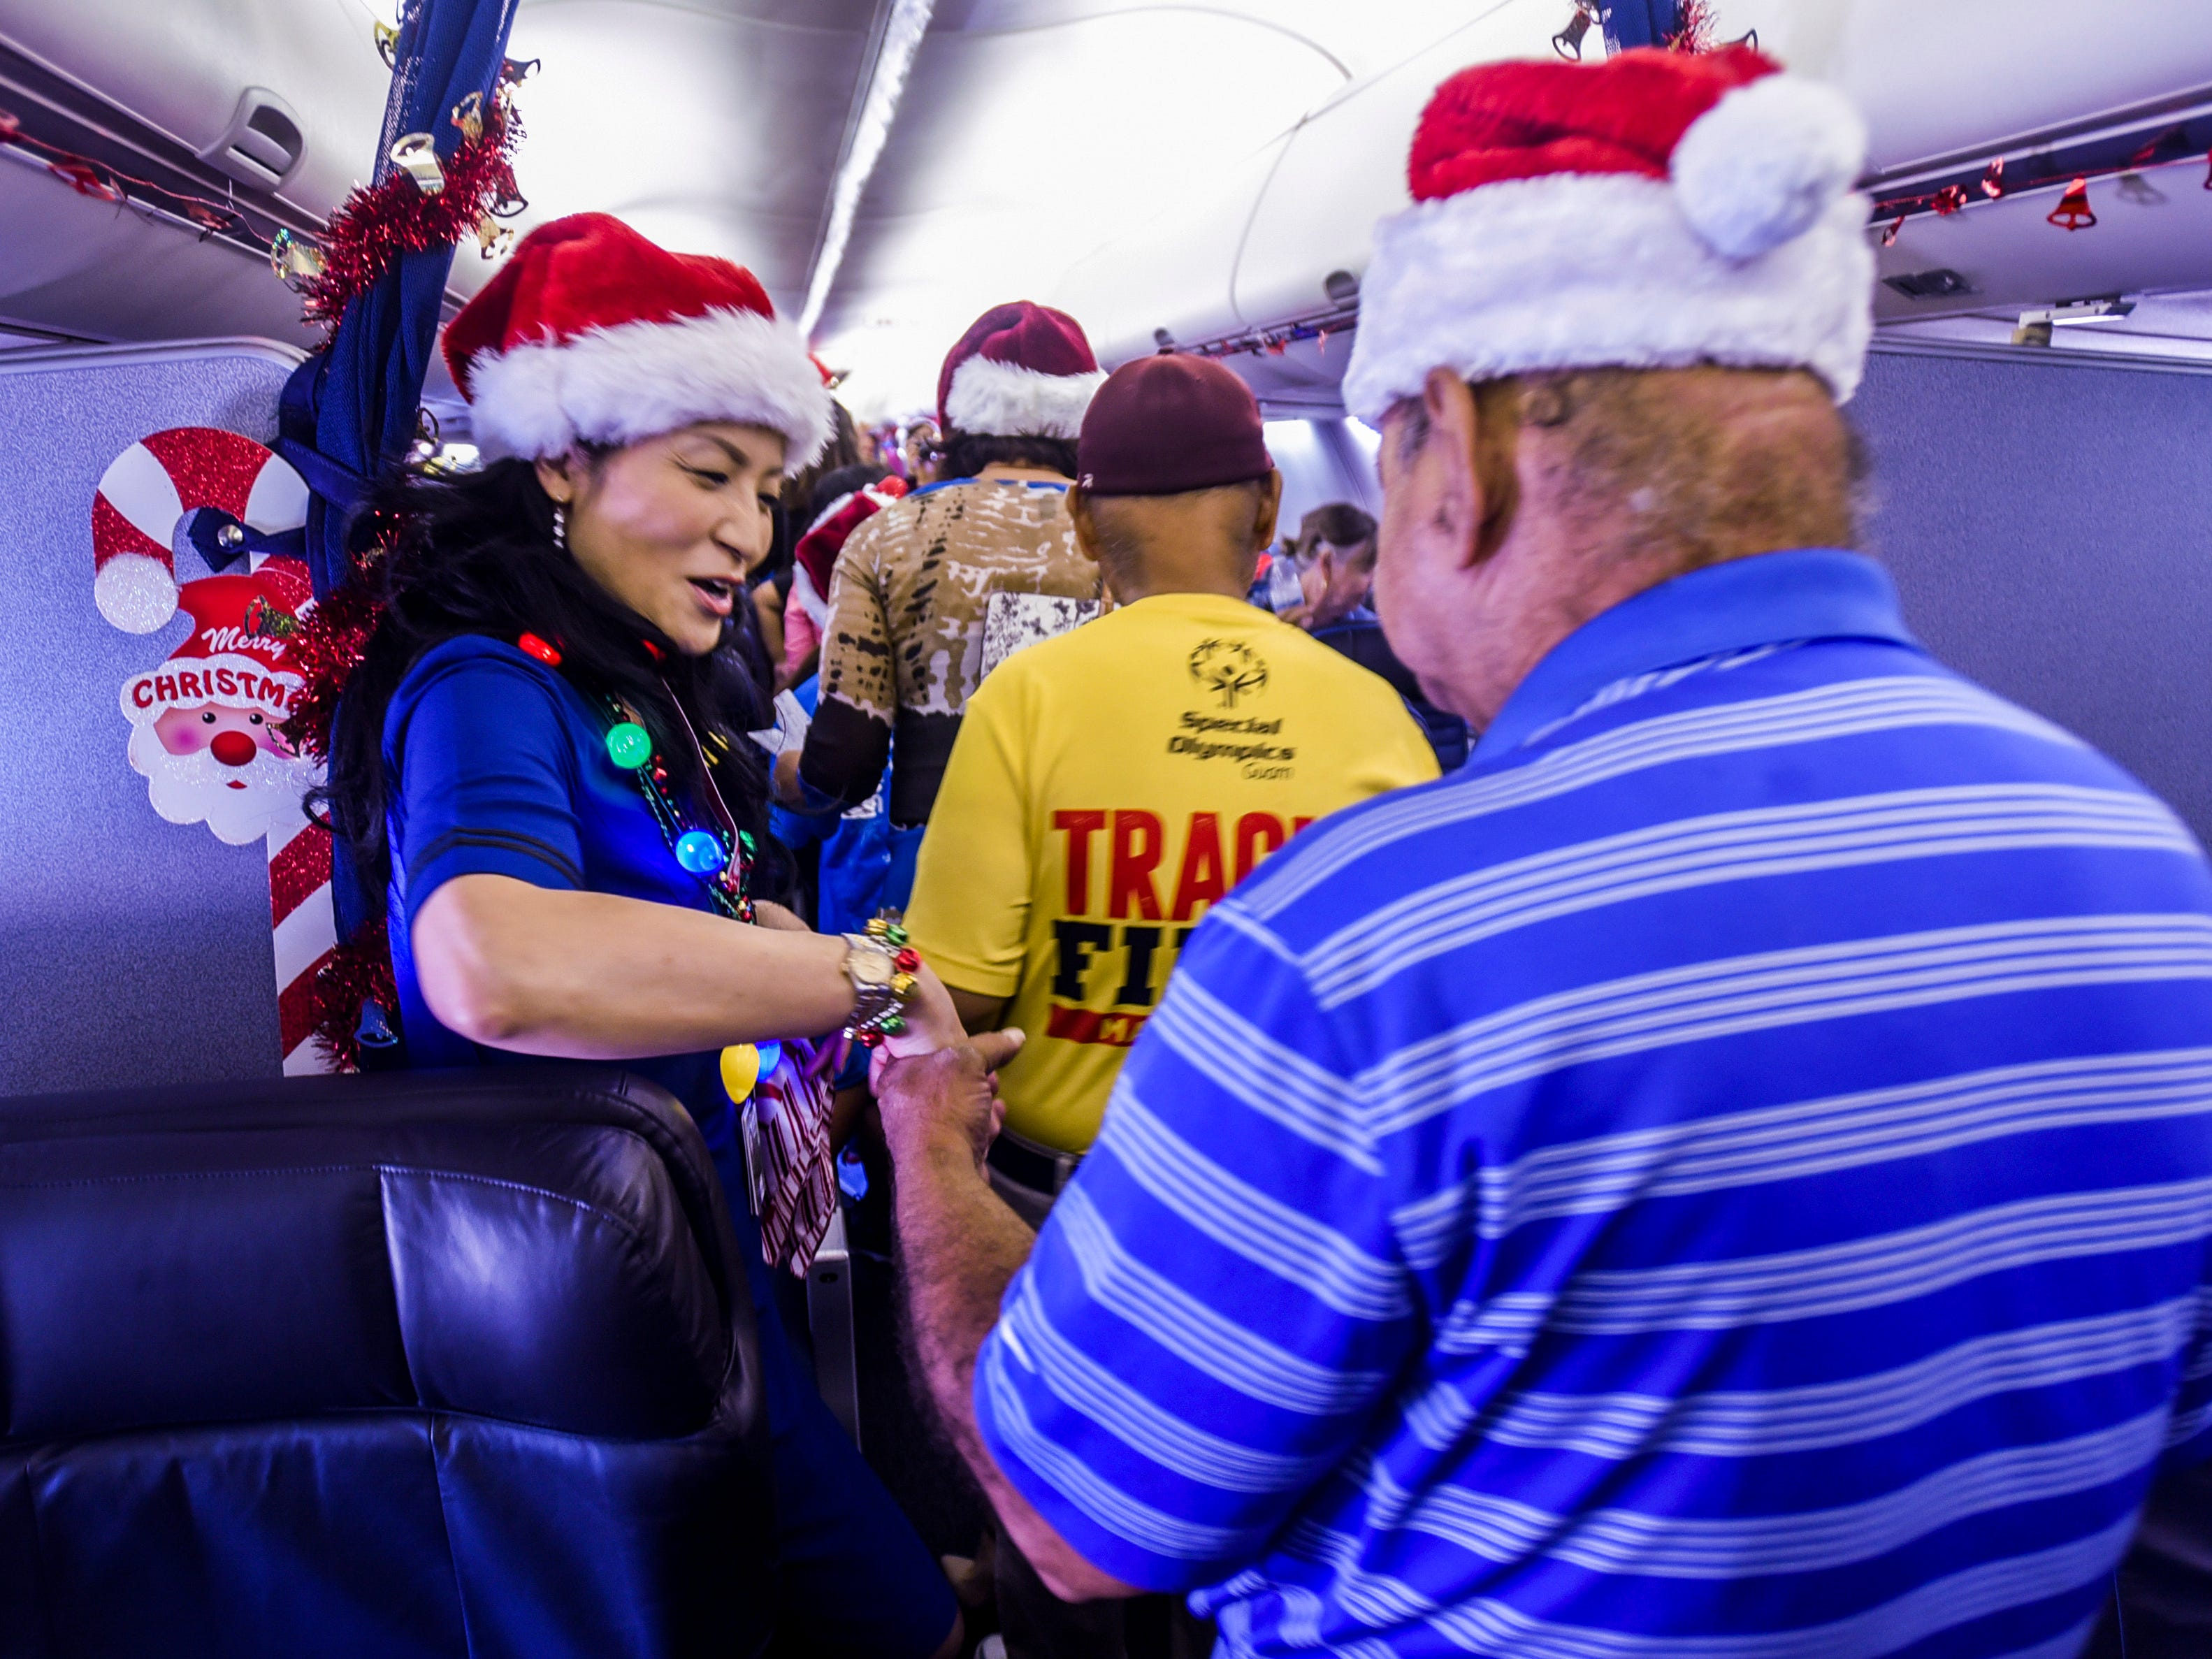 United Airline crew member, Yukiko Aricayos, greets a passenger as he boards United Airlines' Fantasy Flight to the North Pole at the A.B. Won Pat International Airport on Friday, Dec. 7, 2018. Thirty-three Guam Special Olympians, and their guests, were presented with an experience to enjoy live entertainment, food, games, holiday cookie decorating and face paintings after a make-believe flight to visit Santa Claus and his helpers. The event was the air carrier's fifth consecutive year of sharing holiday cheer with a group of the island's deserving children. This year, the airline's Guam hub was joined by 15 other United destinations around the globe in celebrating the holiday event.